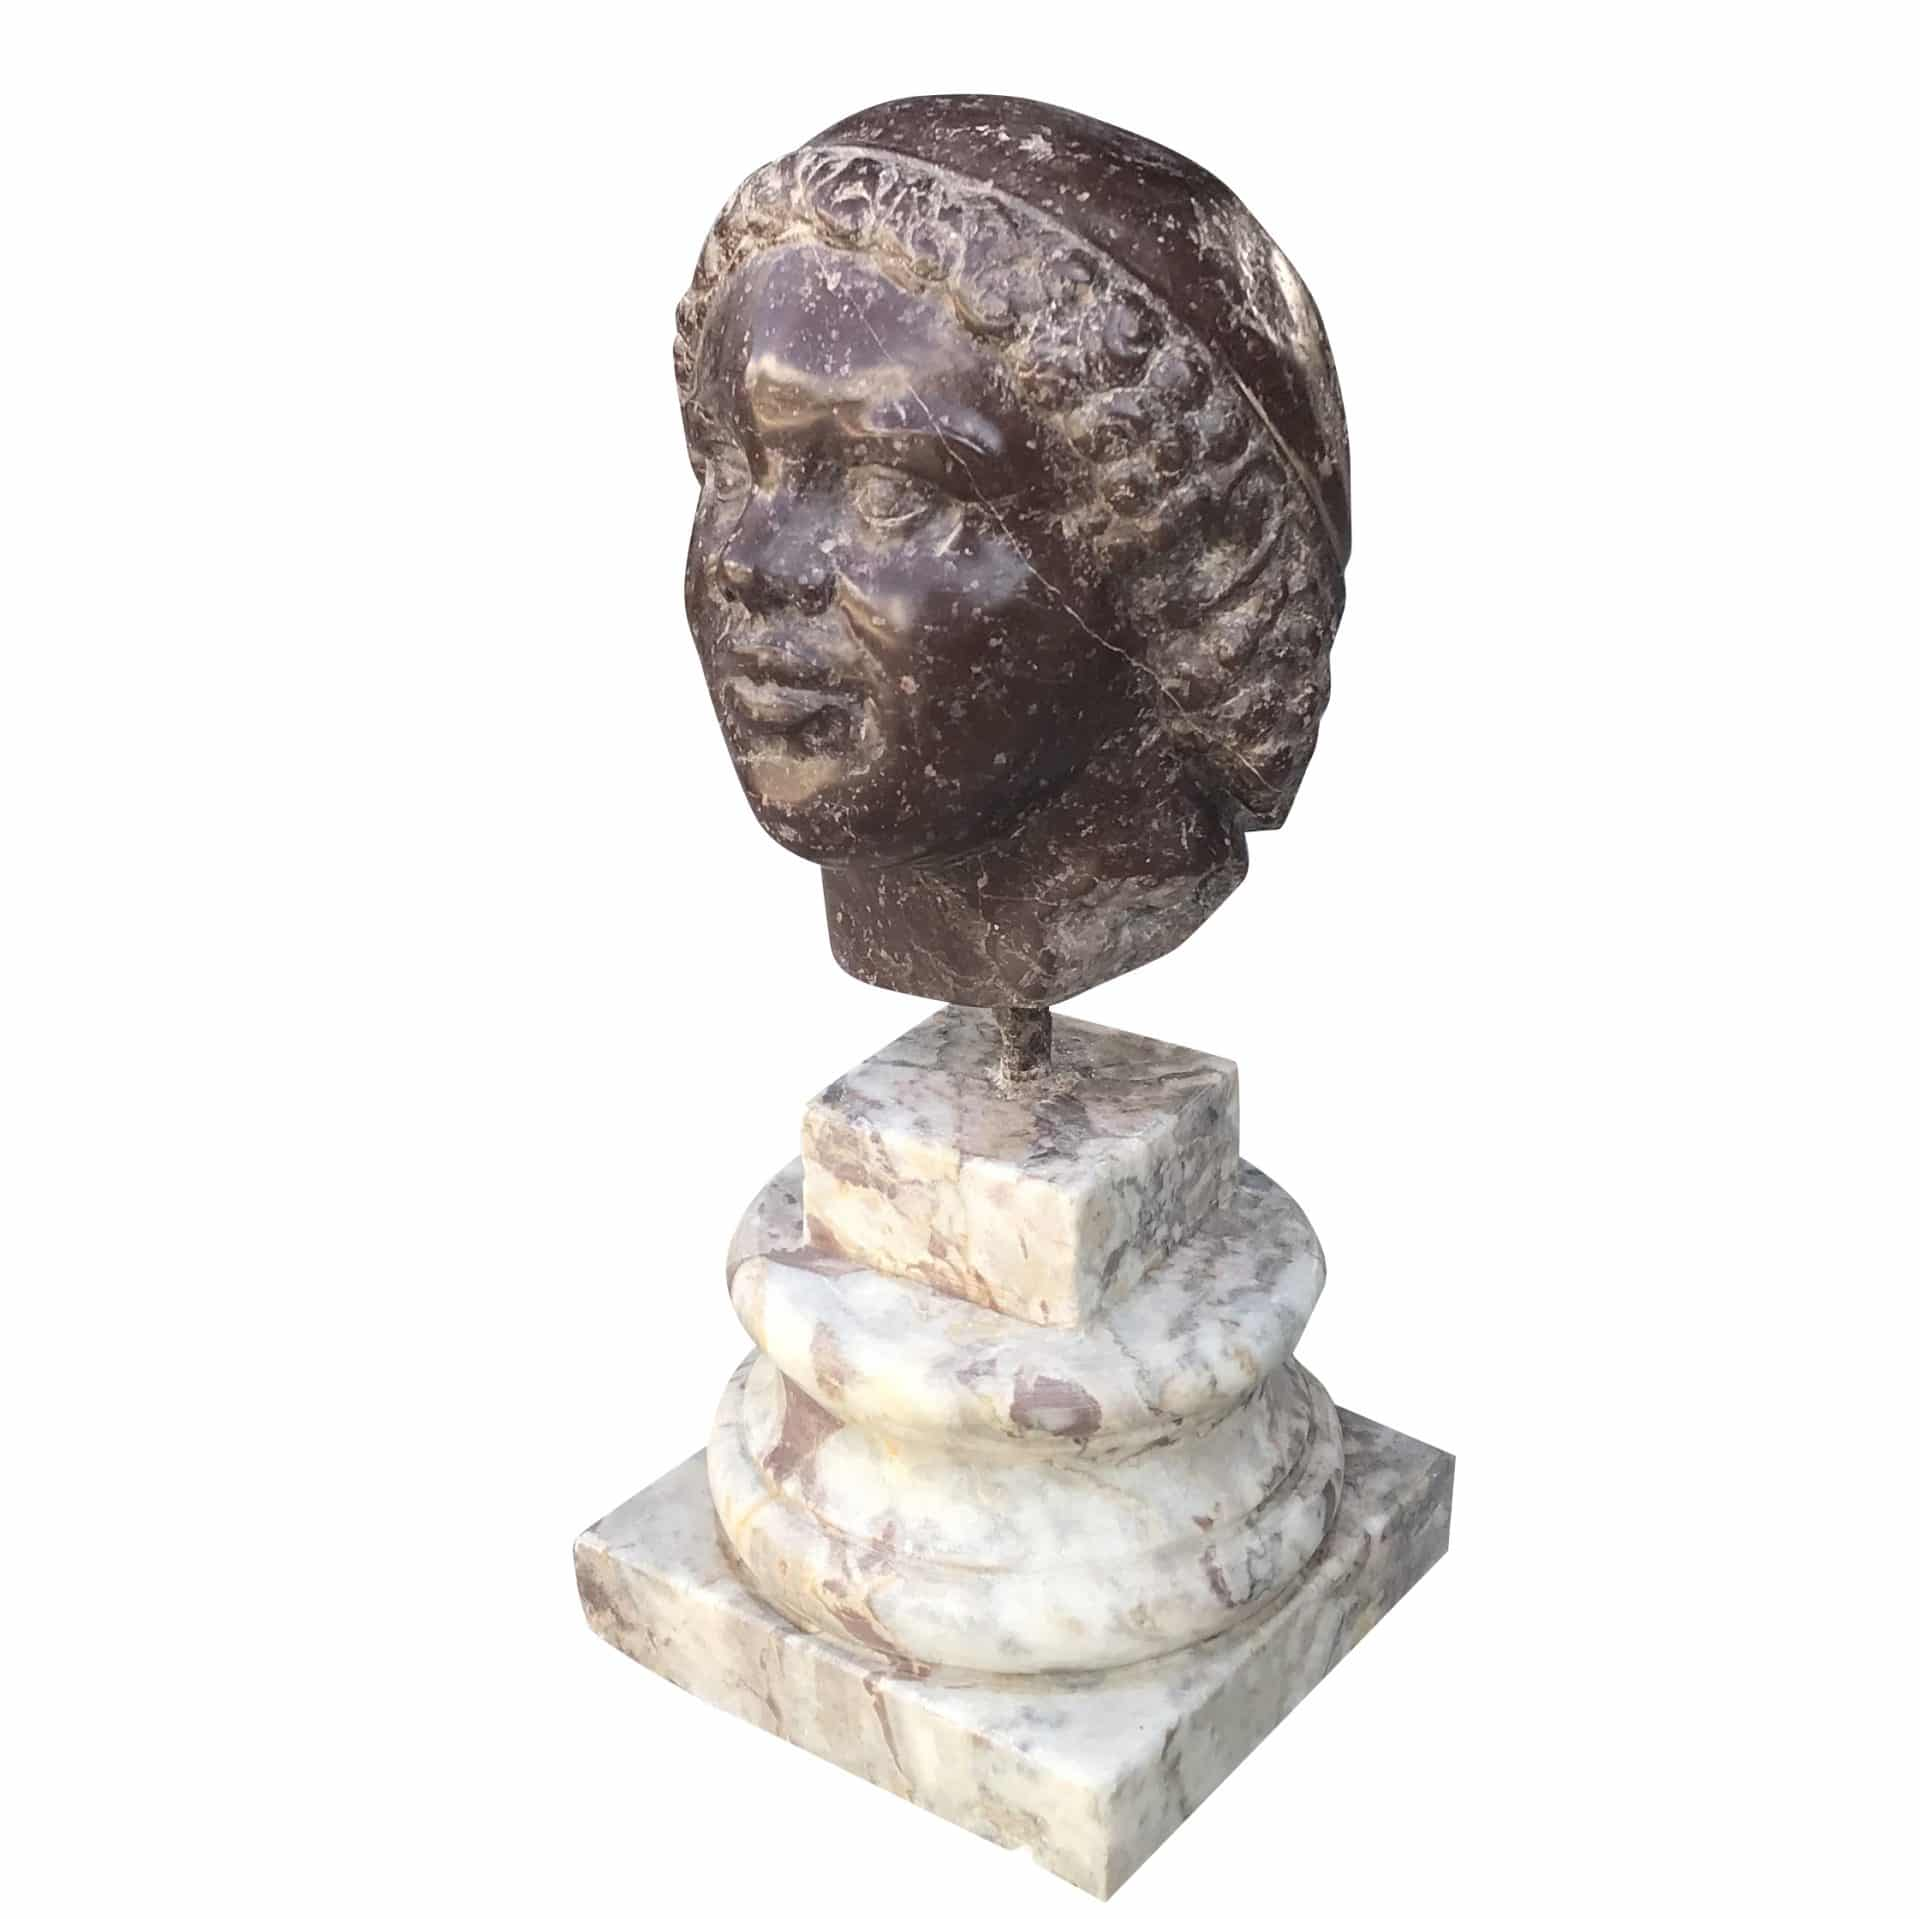 19th Century Sculptured Head in Marble